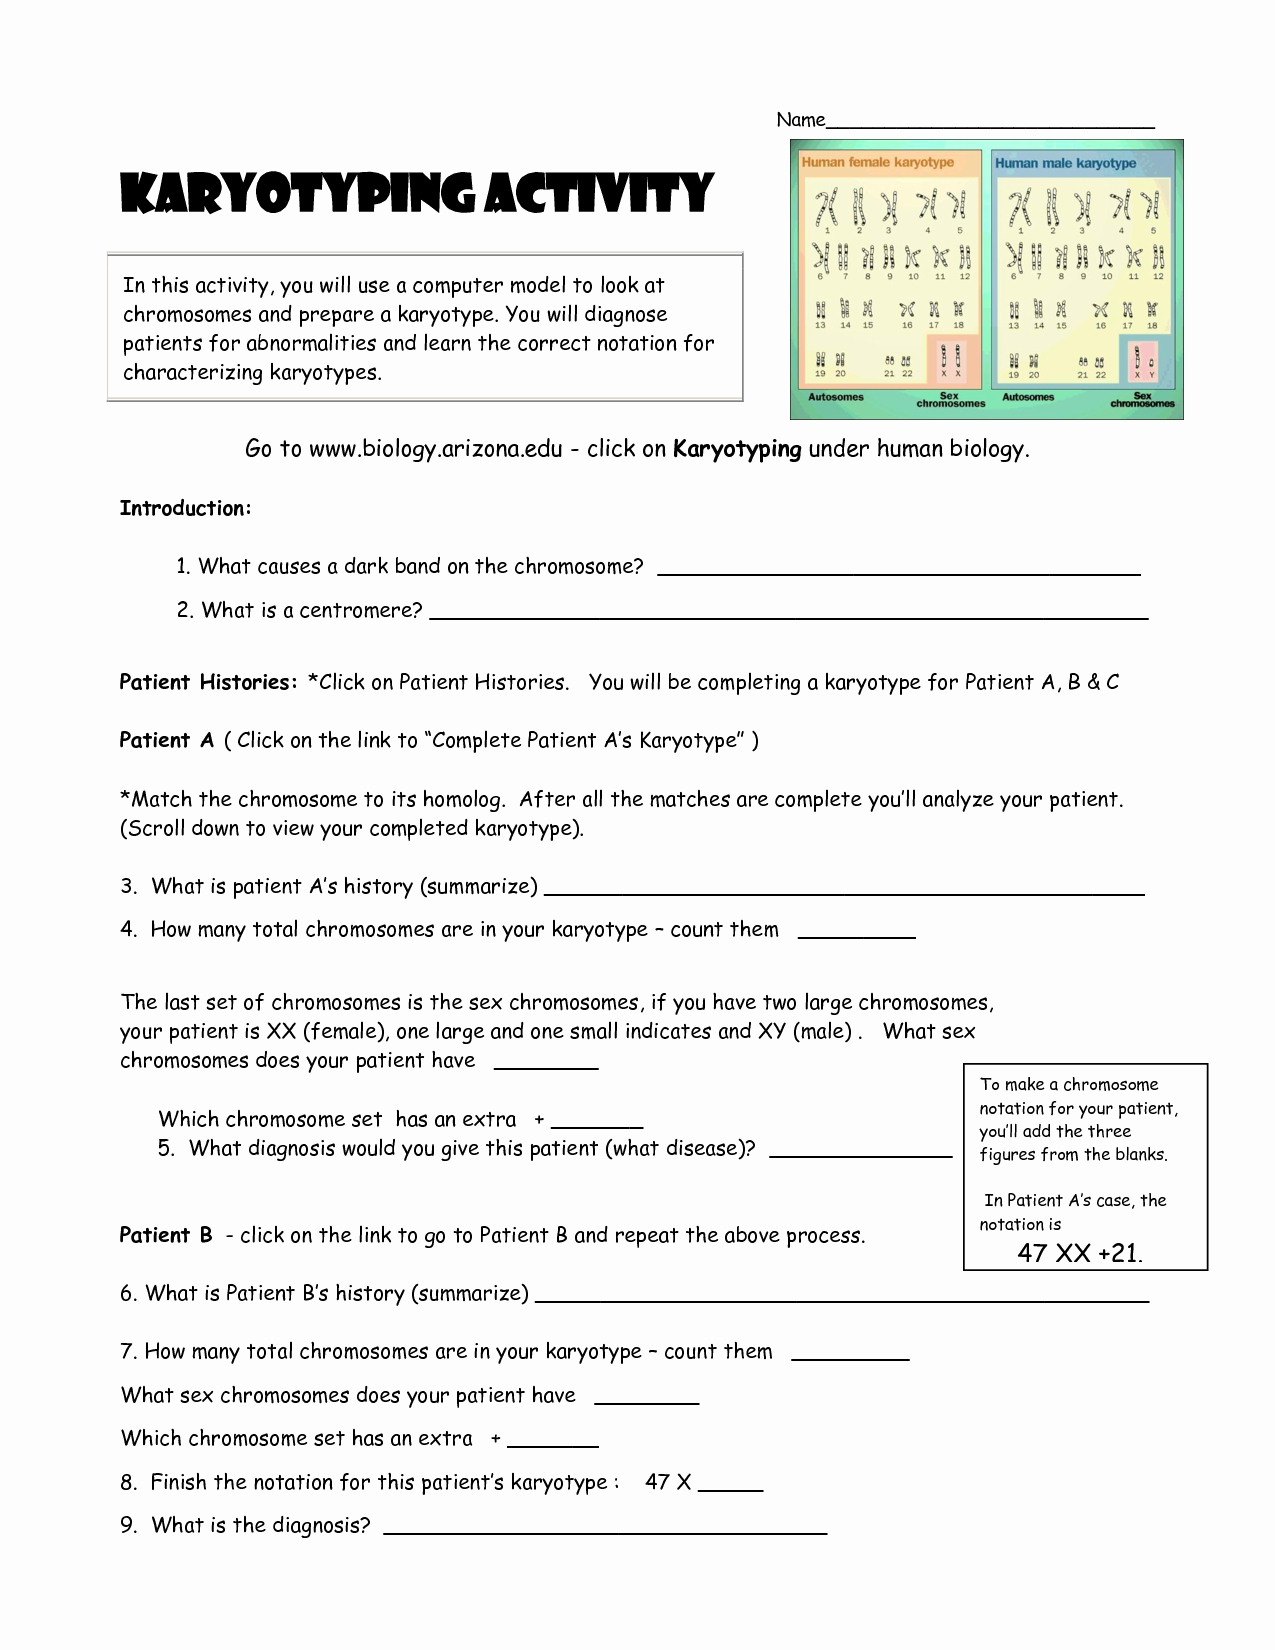 Biology Karyotype Worksheet Answers Key Lovely Karyotyping Activity Doc Teaching Stuff